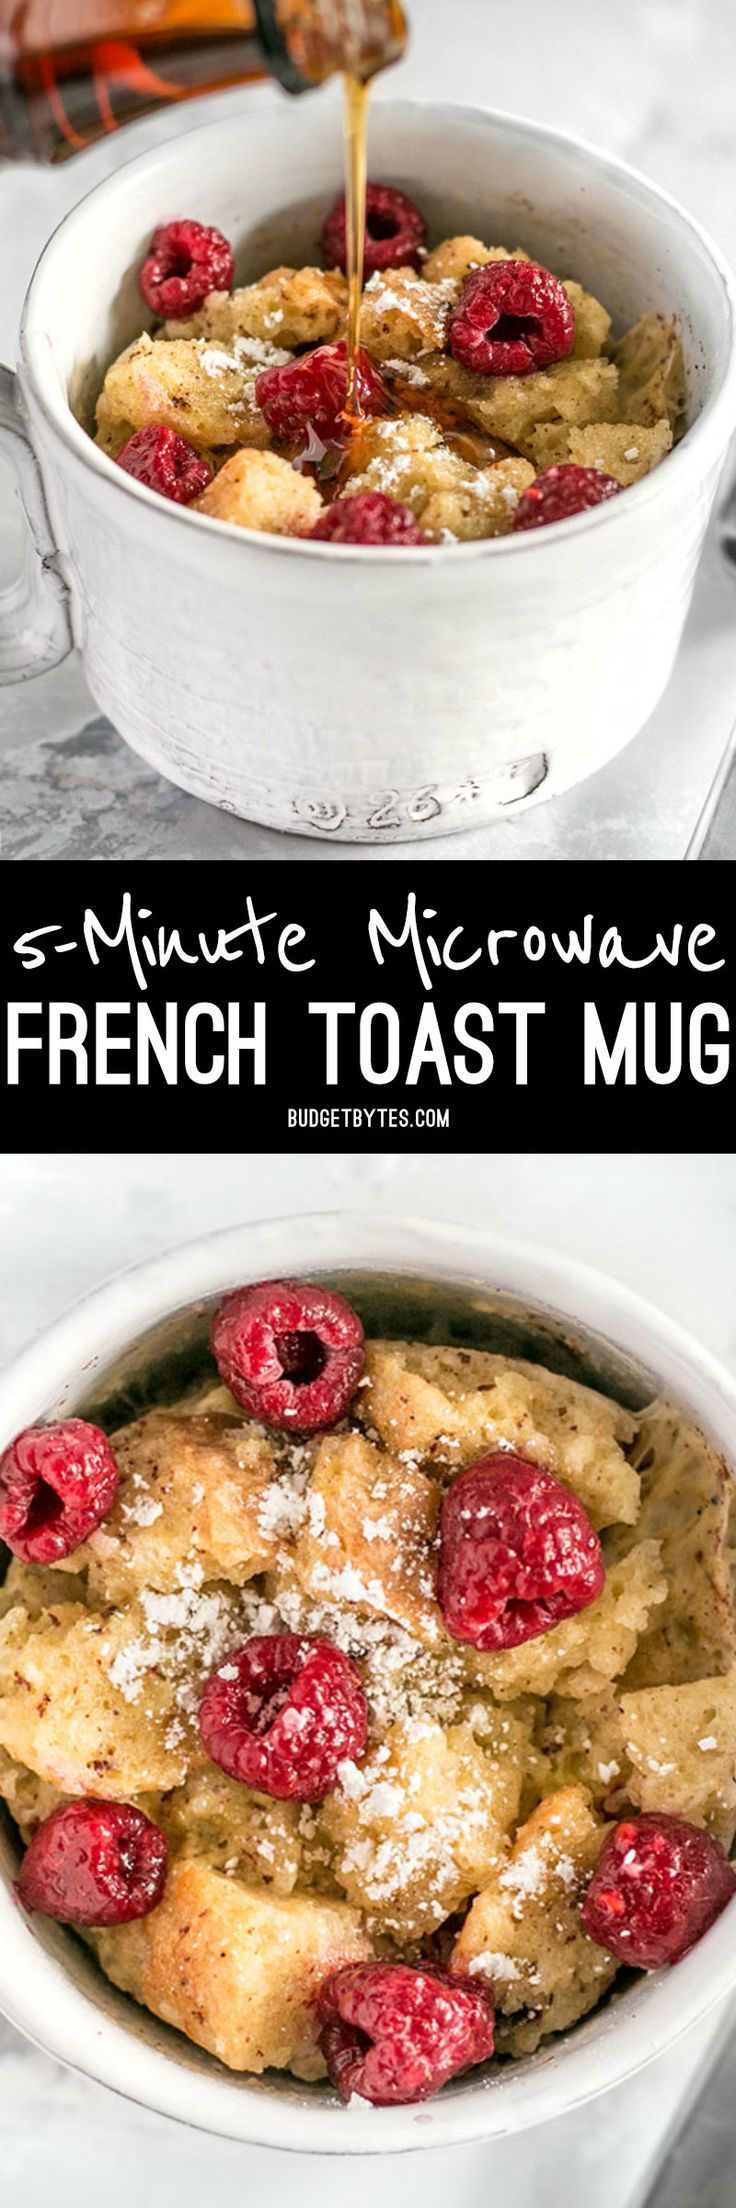 5minute Microwave French Toast Mug